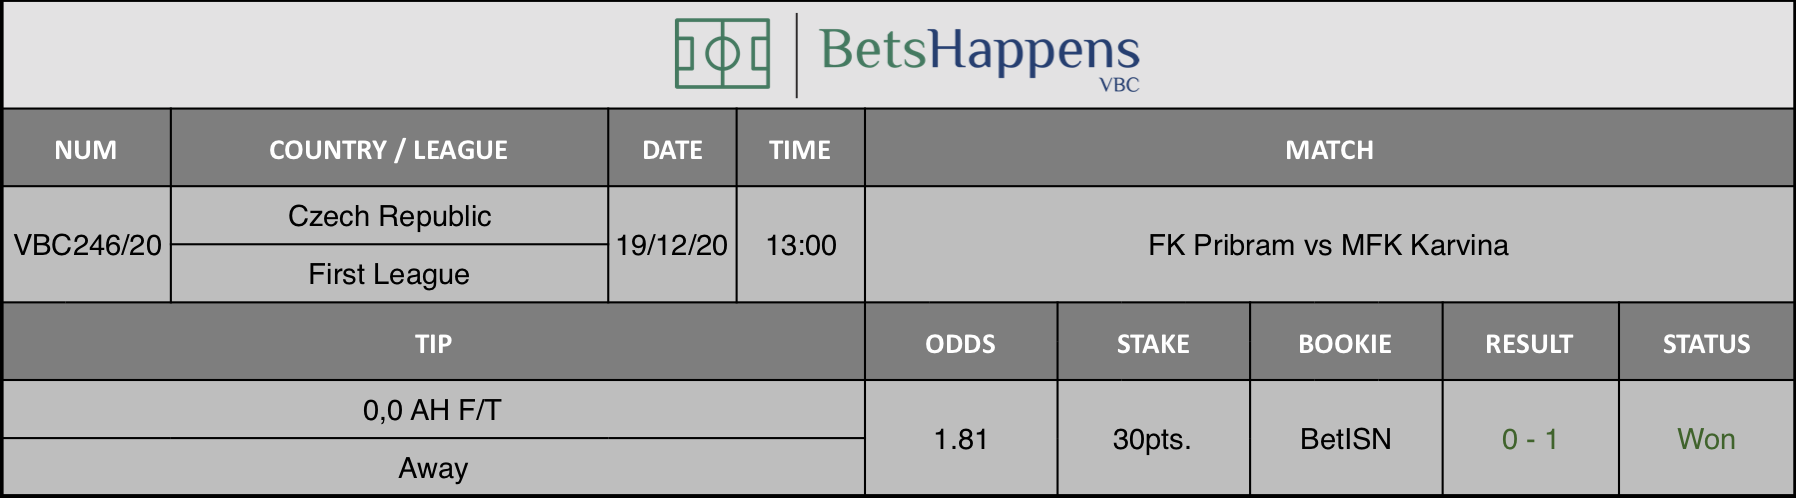 Results of our tip for the FK Pribram vs MFK Karvina match where 0,0 AH F/T  Away is recommended.